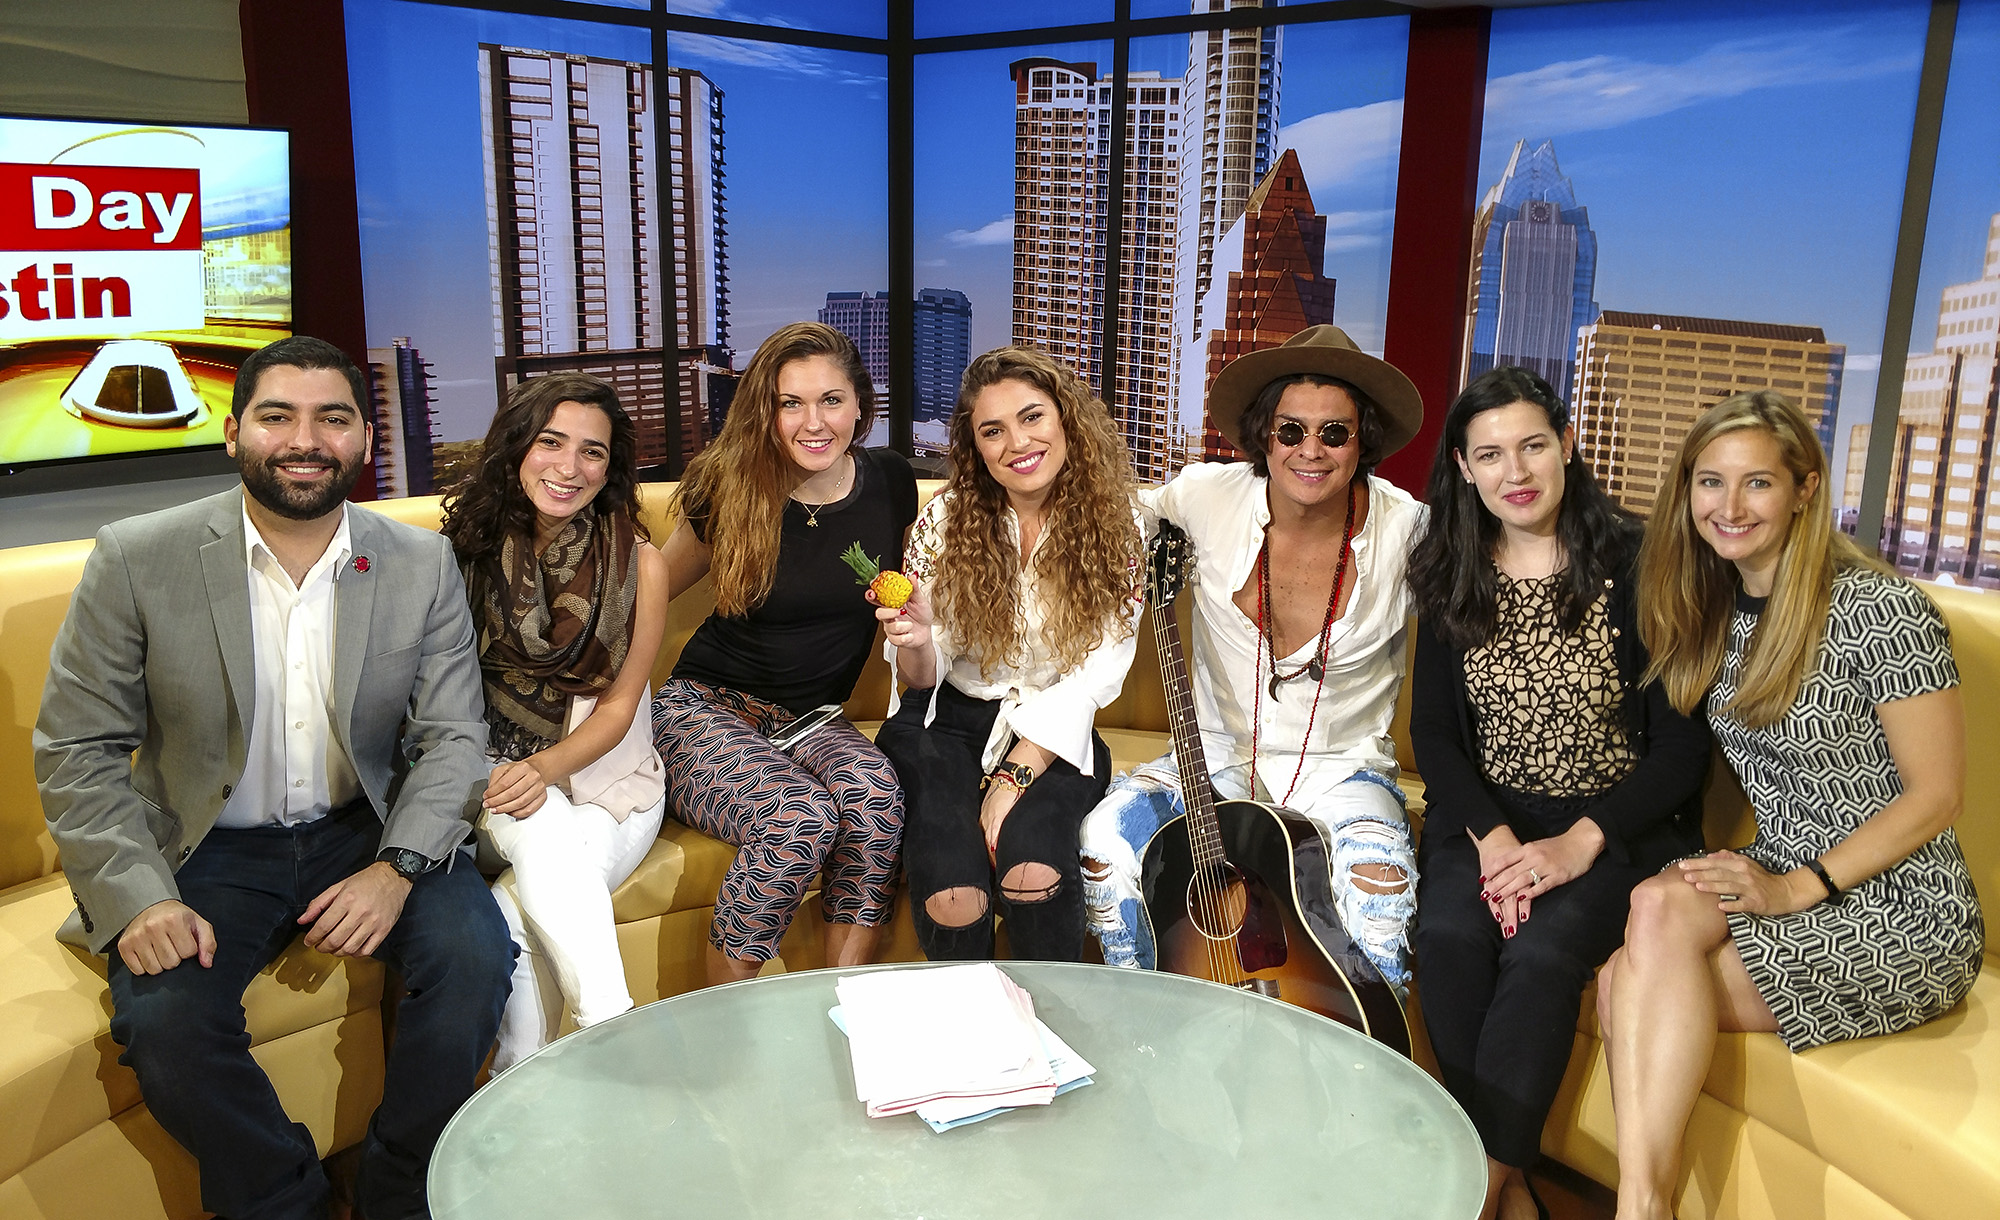 Periko y Jessi, the DishLATINO team, and NHI's Zachary Gonzalez at Fox 7's studios